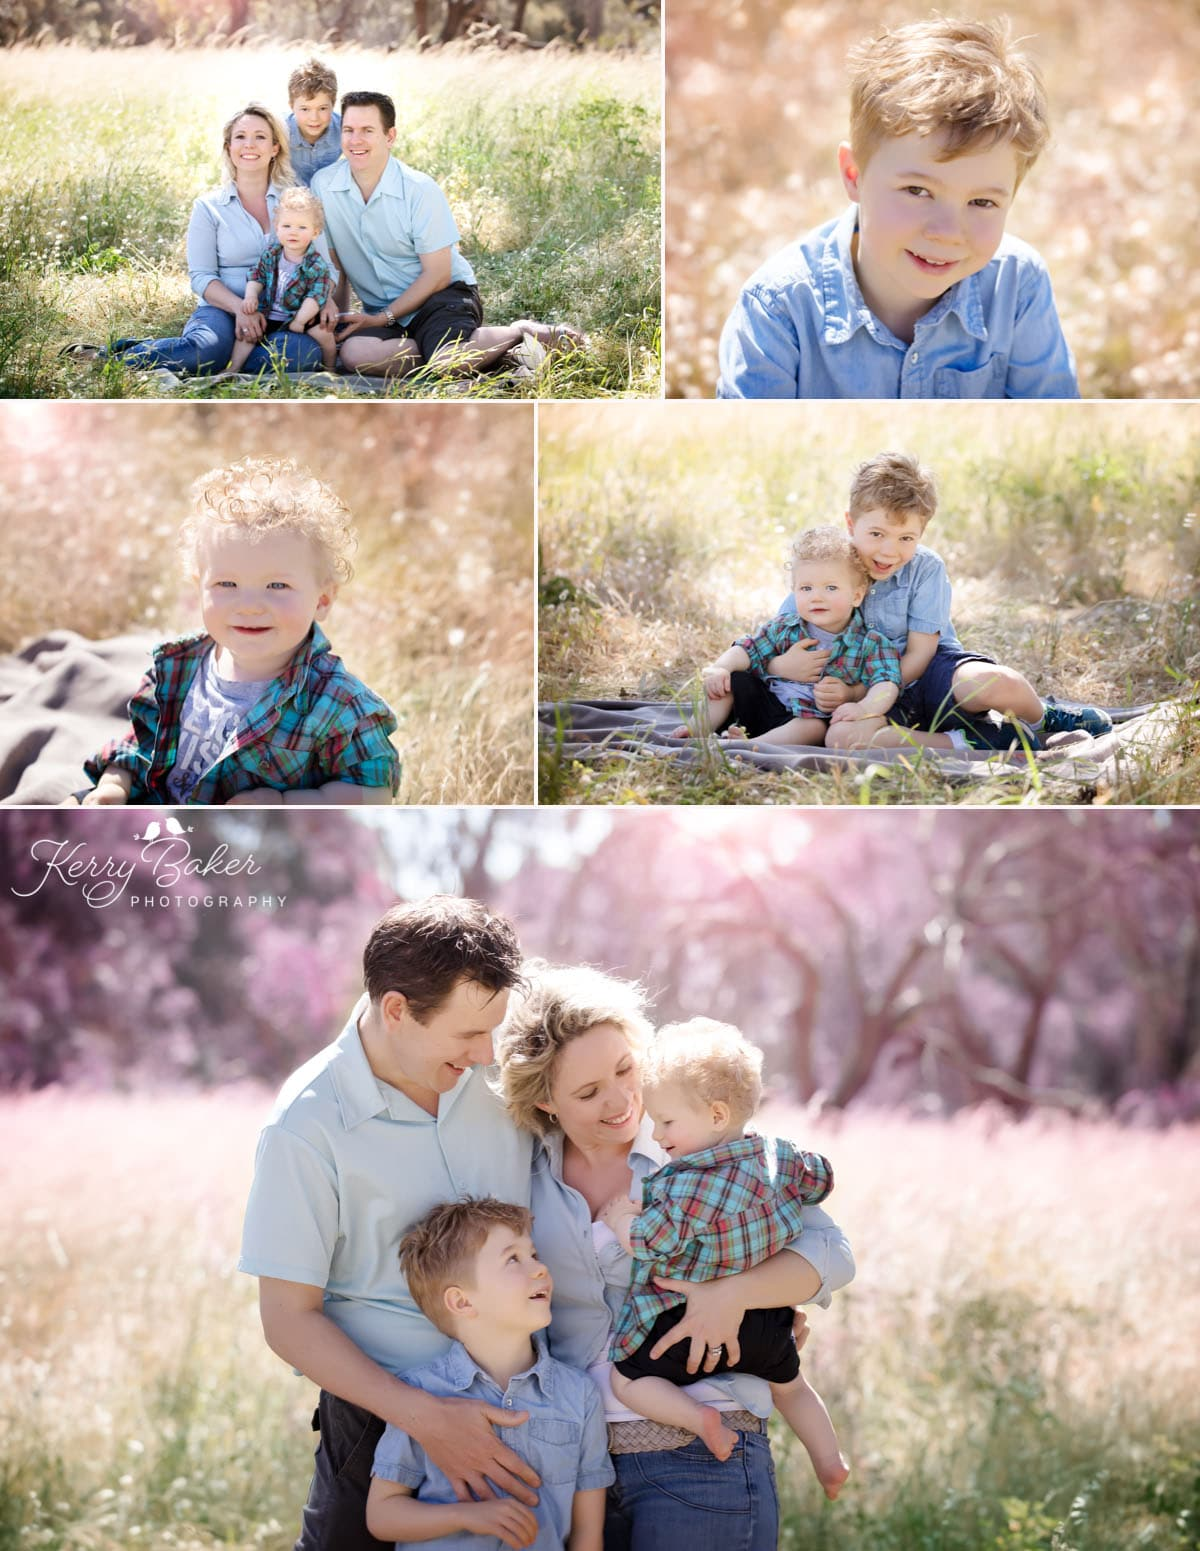 Family photos in Perth beautiful outdoor location